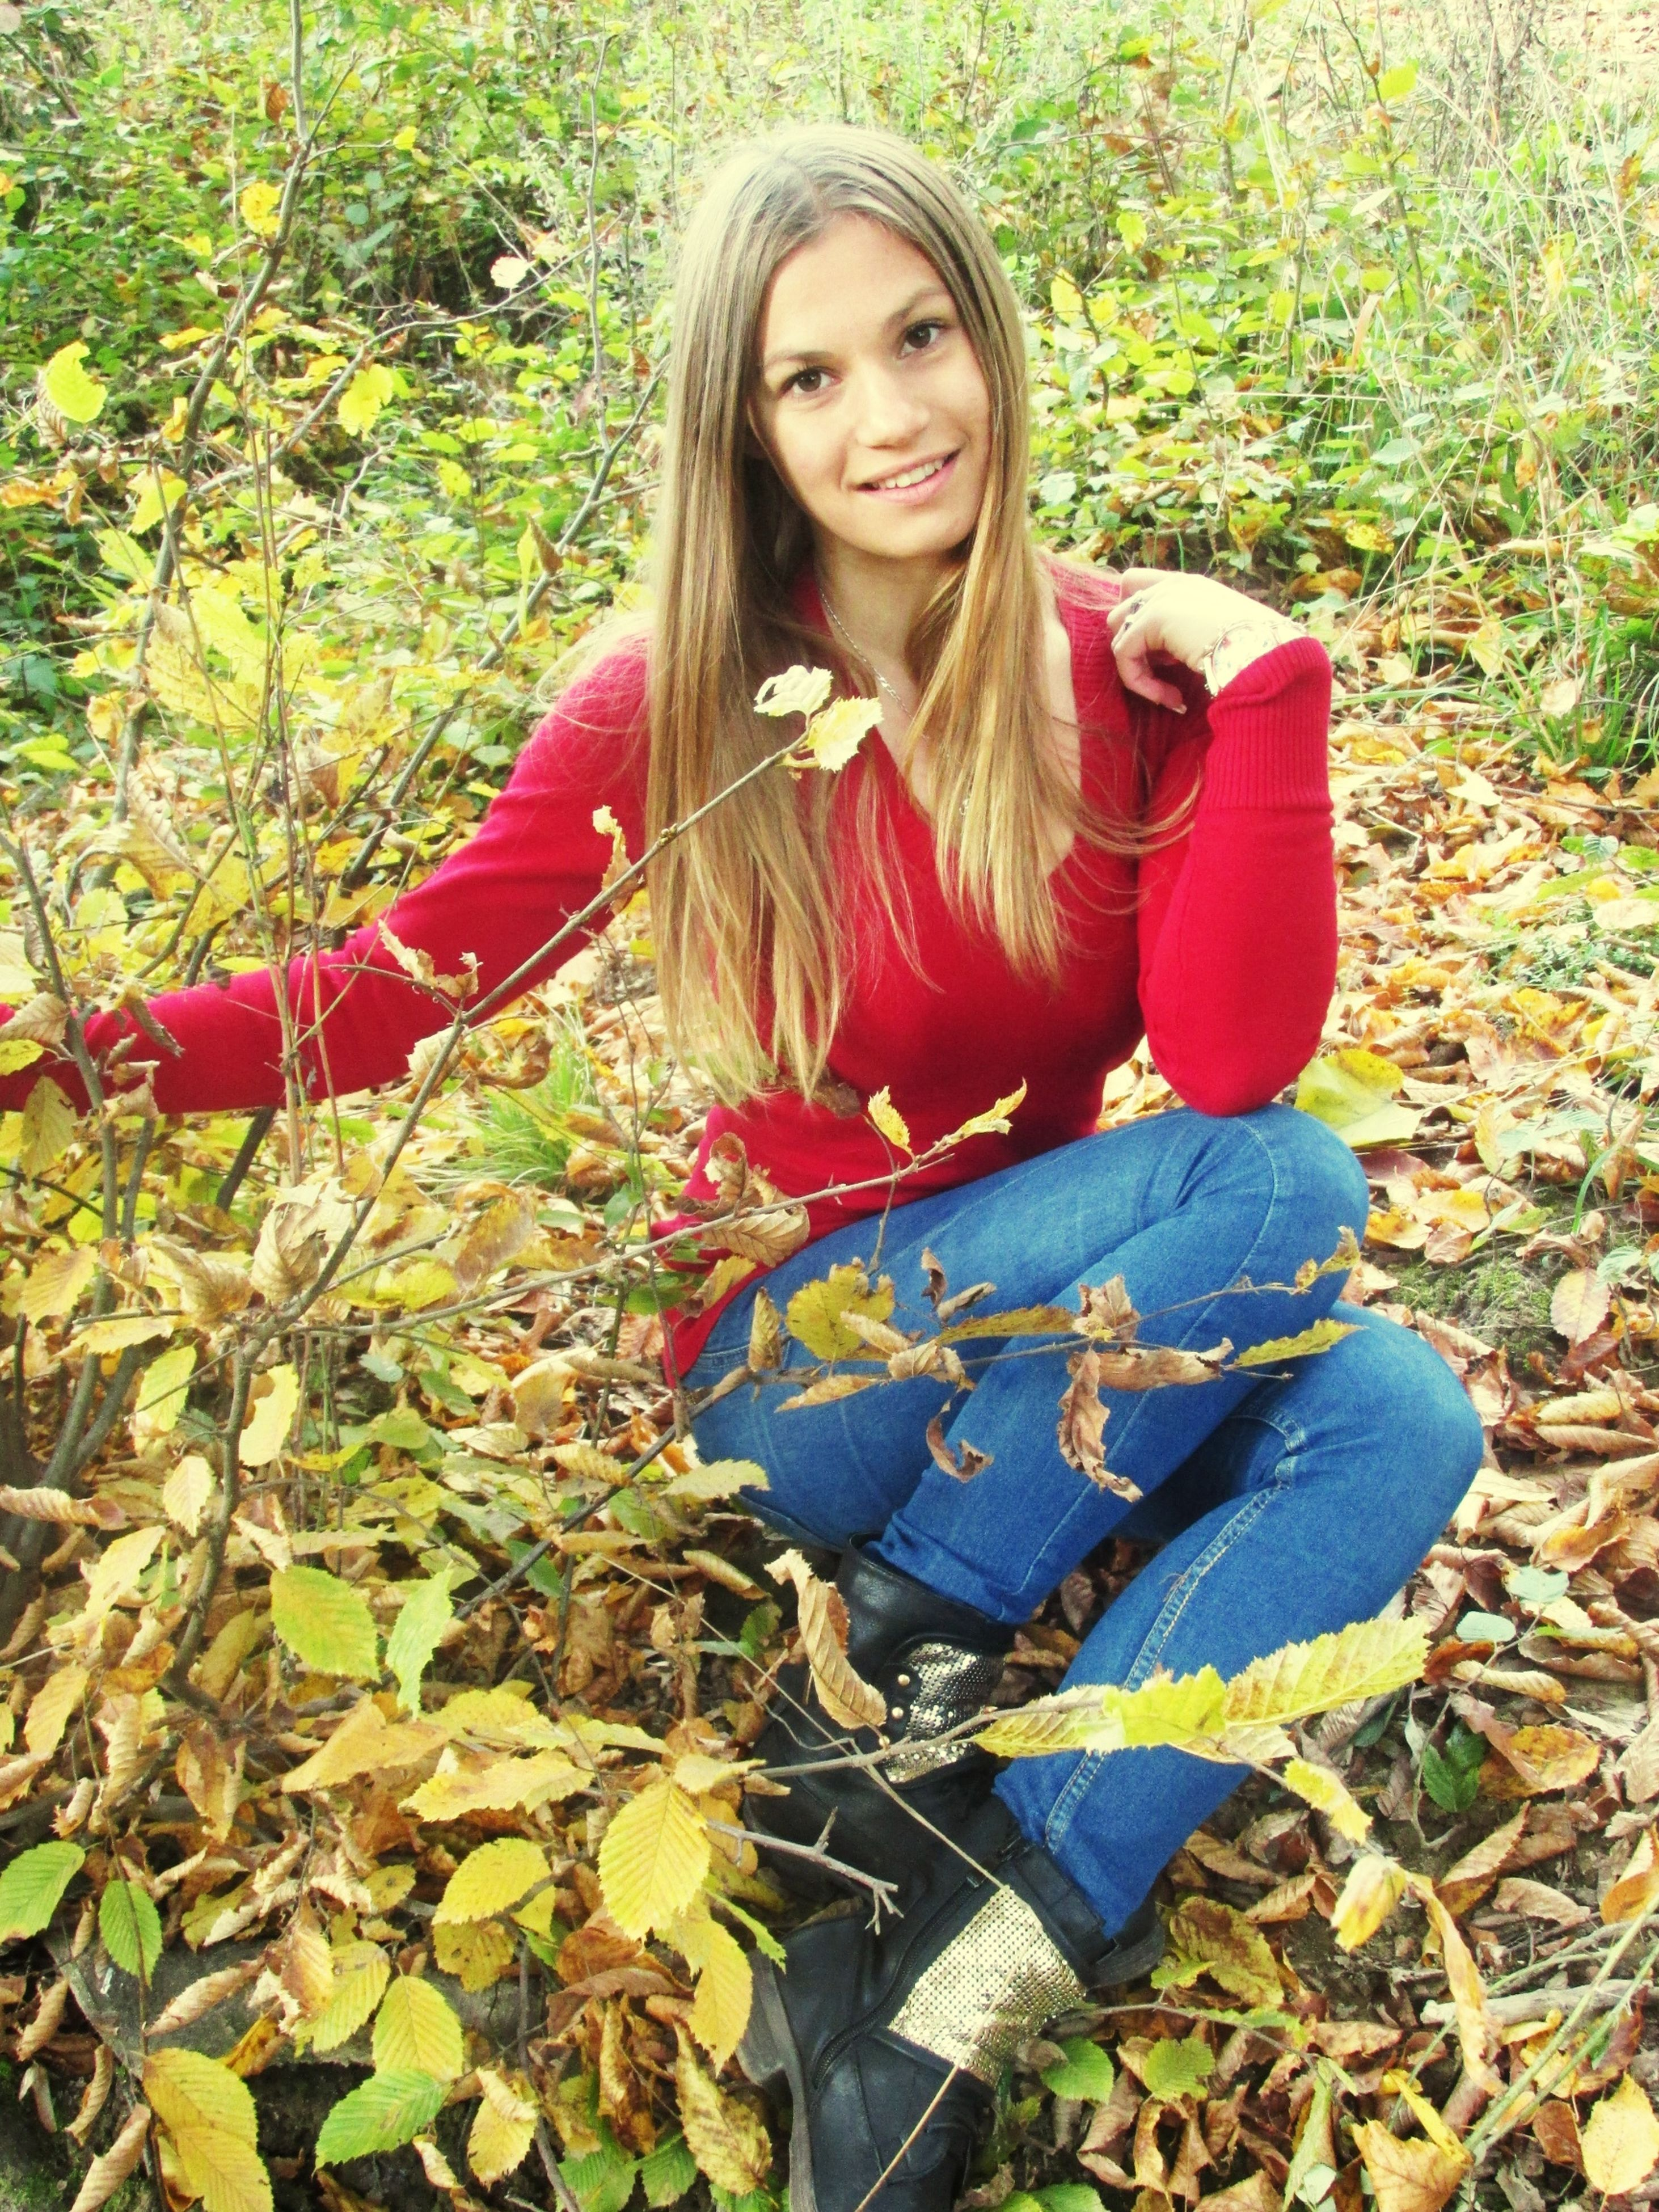 person, young adult, casual clothing, portrait, looking at camera, lifestyles, young women, leisure activity, smiling, front view, standing, long hair, three quarter length, full length, leaf, happiness, plant